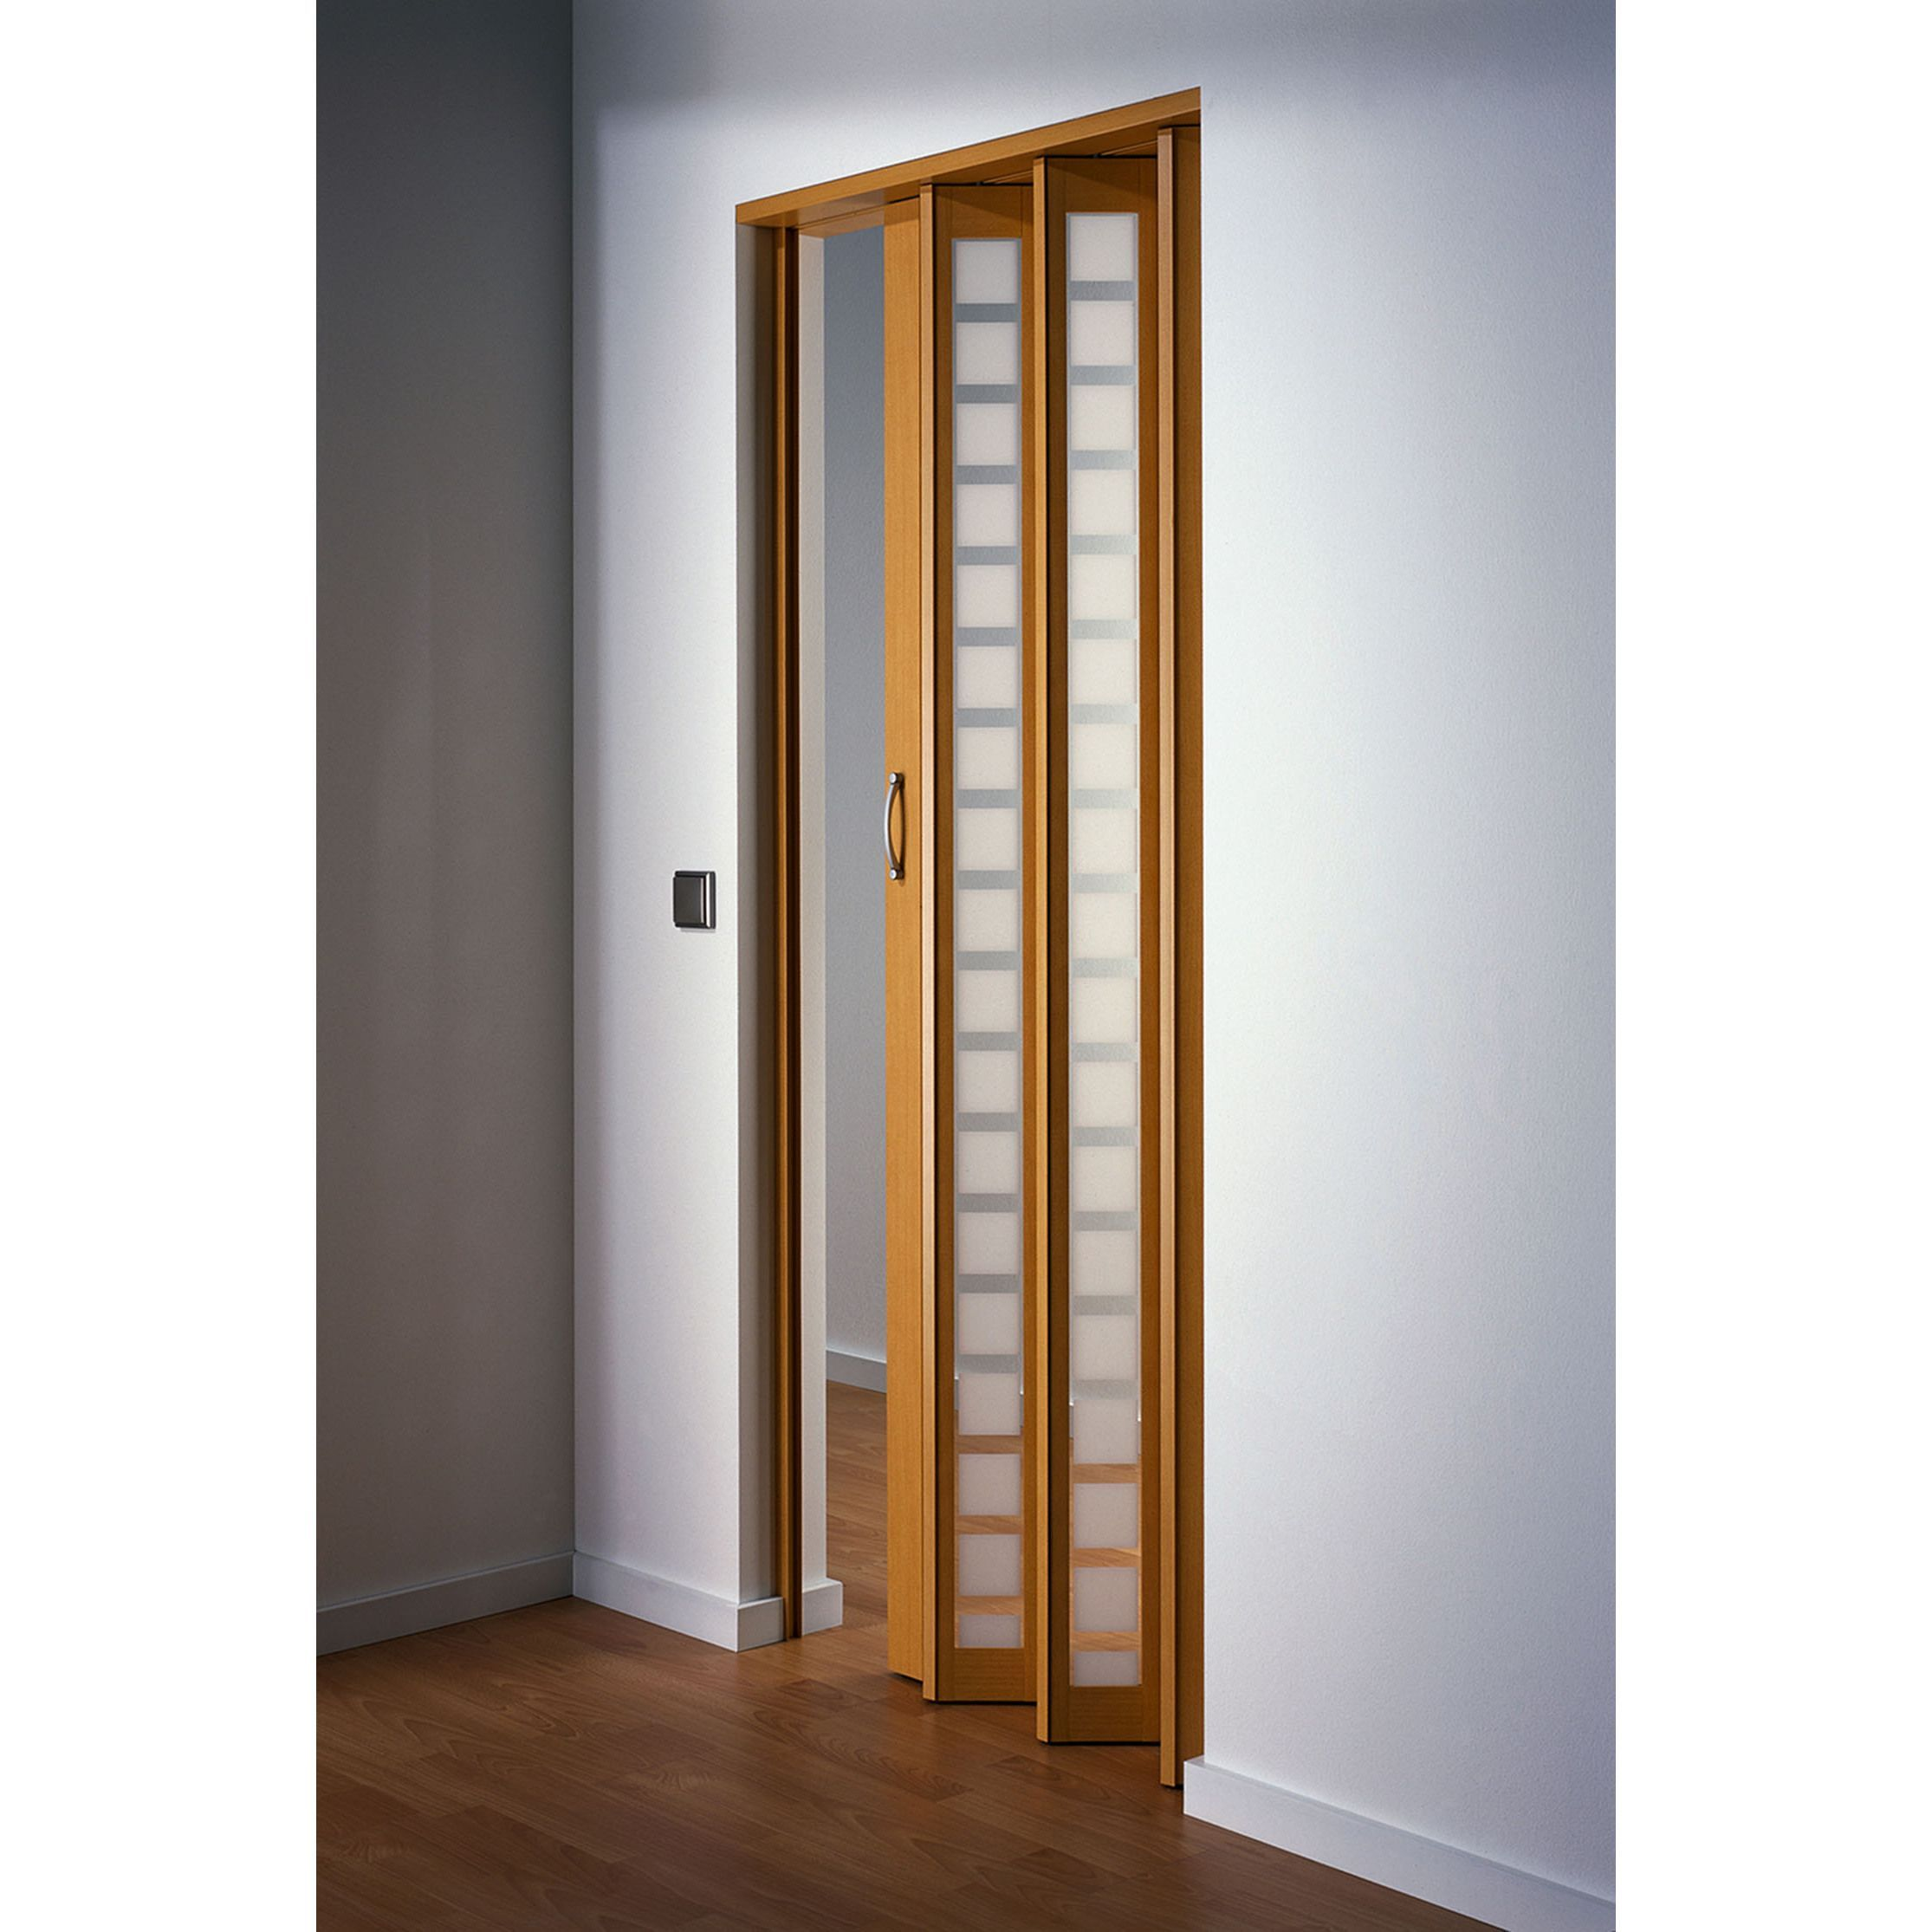 Homestyle Metro Beech with Frosted Squares Folding Door by Homestyle  sc 1 st  Pinterest & Homestyle Metro Beech with Frosted Squares Folding Door by ... pezcame.com